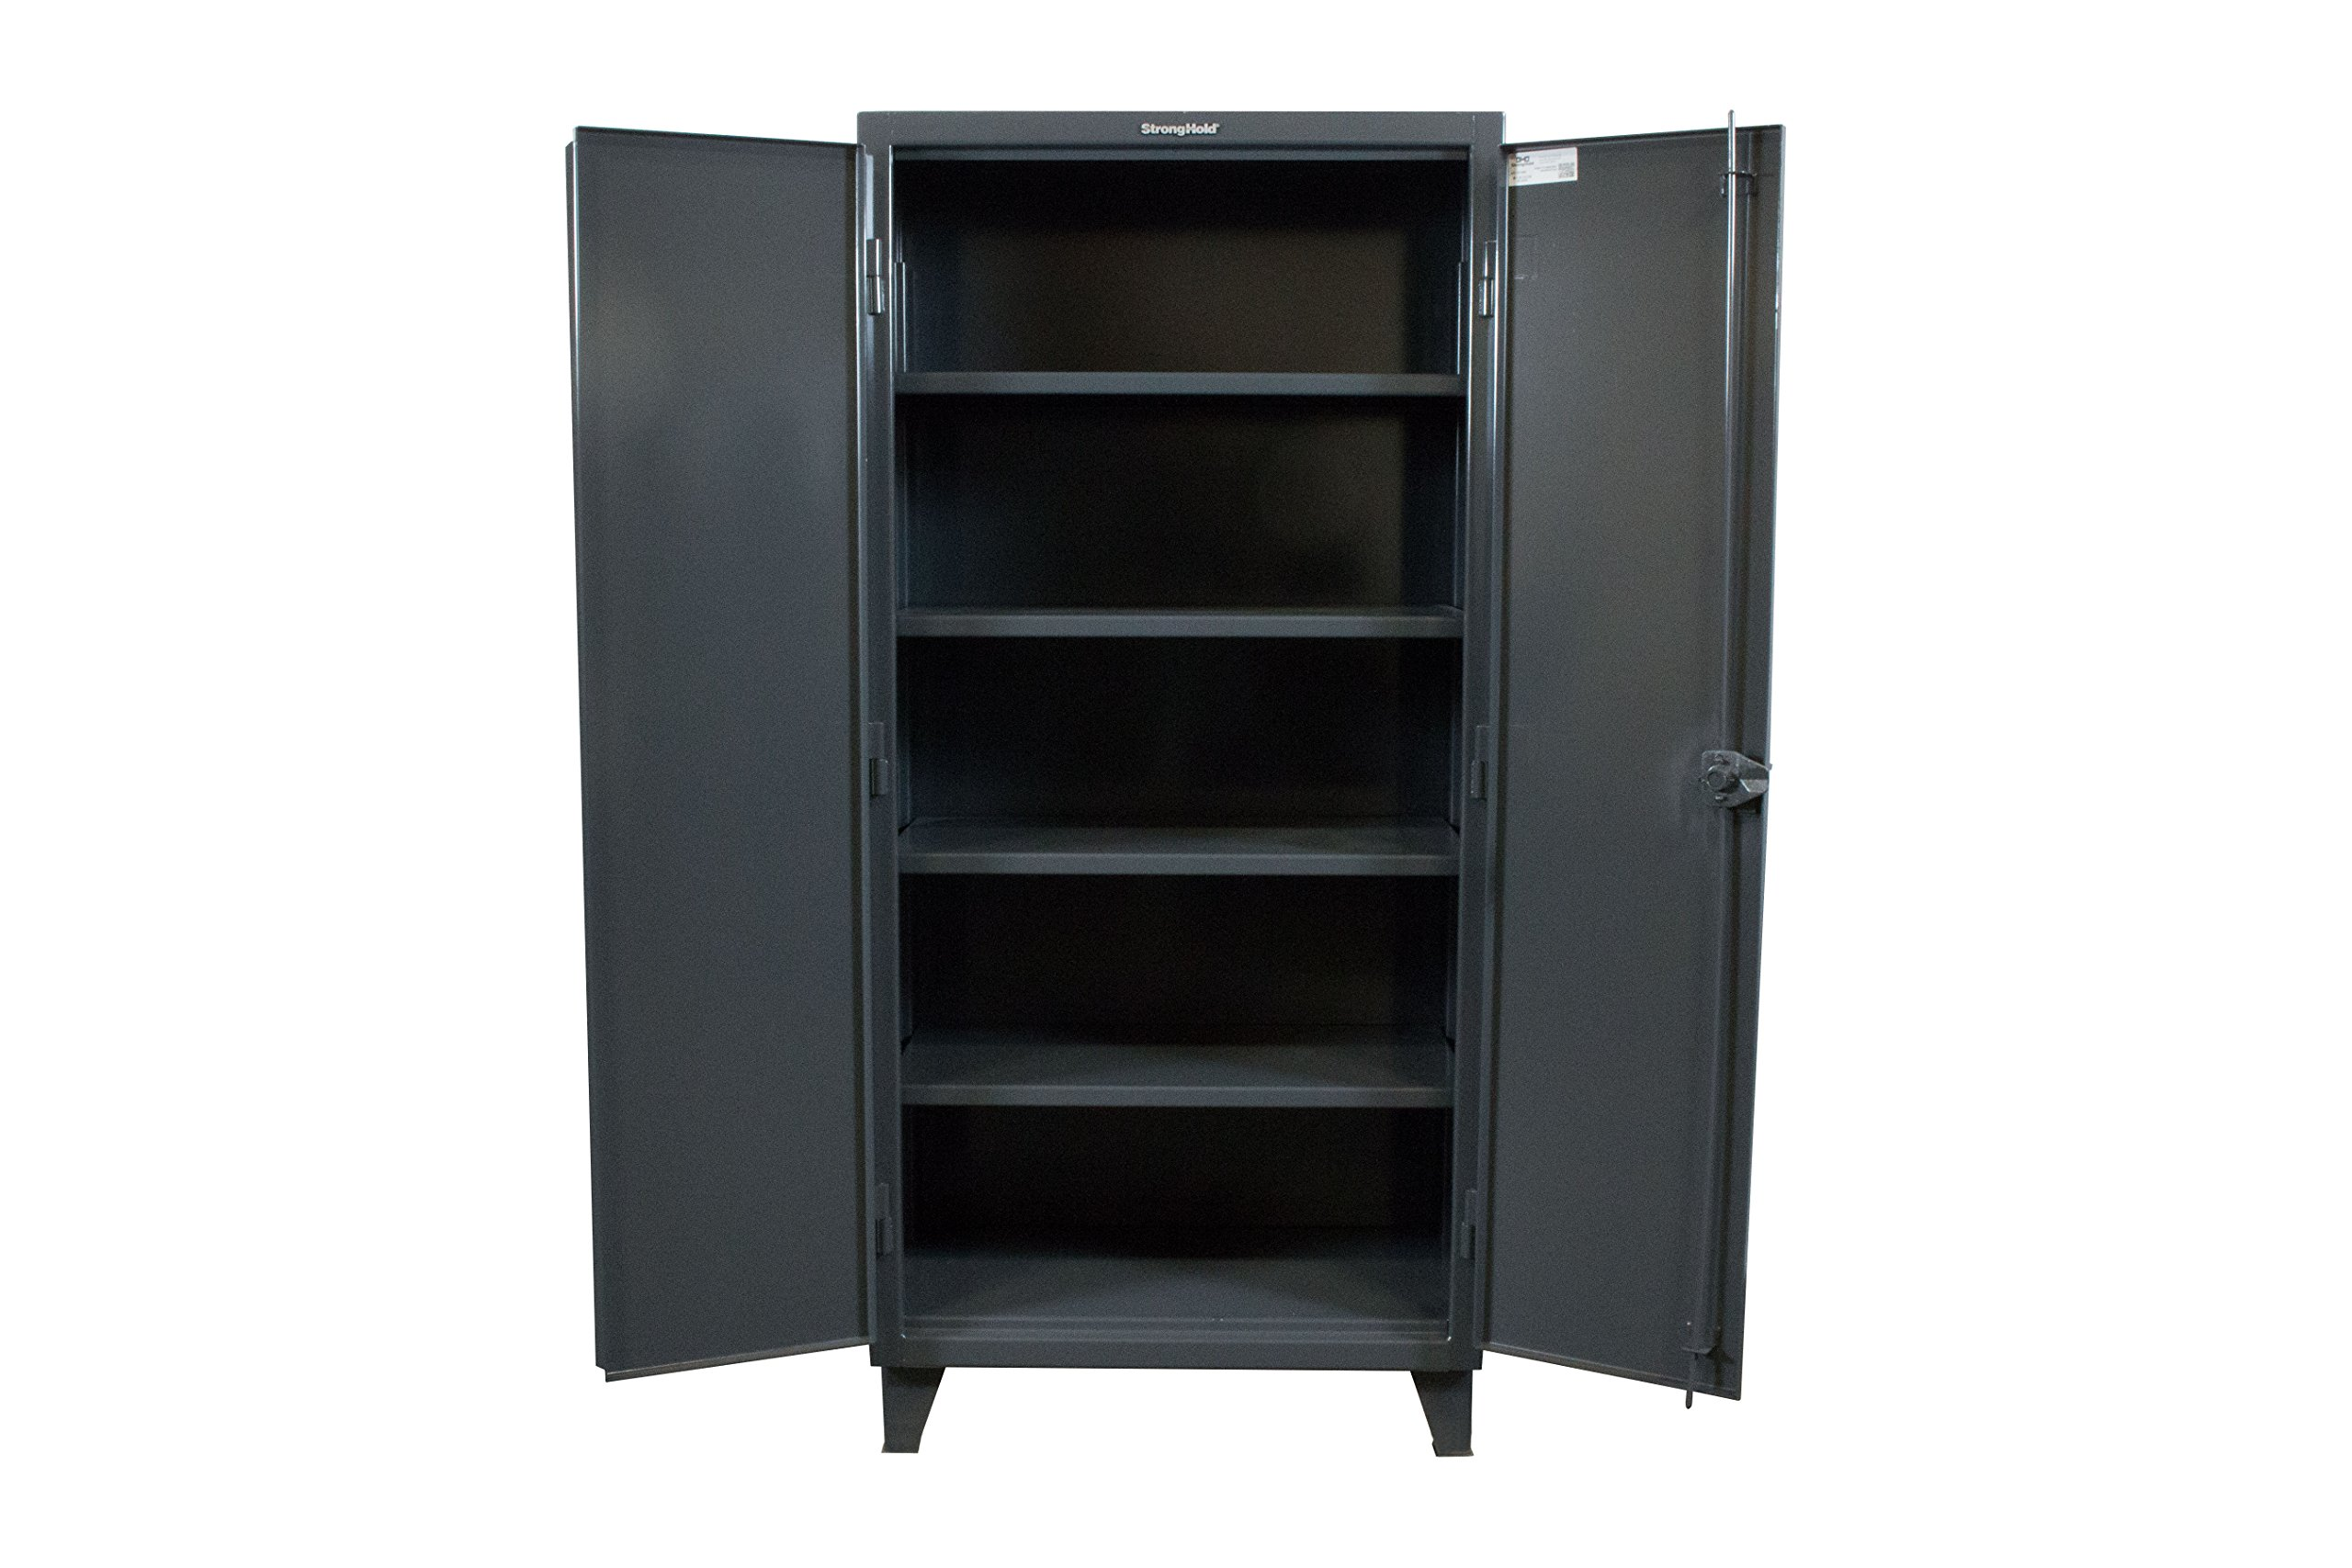 Strong Hold, 36''W x 24''D x 78''H, Industrial Cabinet, Heavy-Duty, Welded and Assembled, 12-Gauge Steel, Dark Gray, 4 Adjustable Shelves with 1,900 lbs. Capacity Each - USA